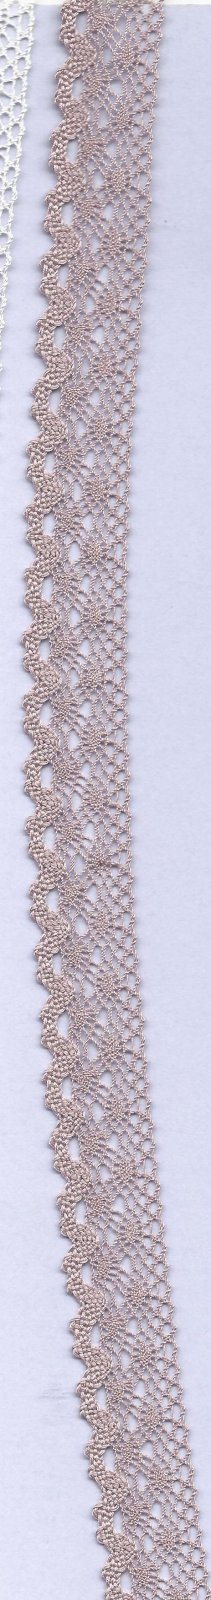 PFA COTTON LACE TRIM 20mm col. 077